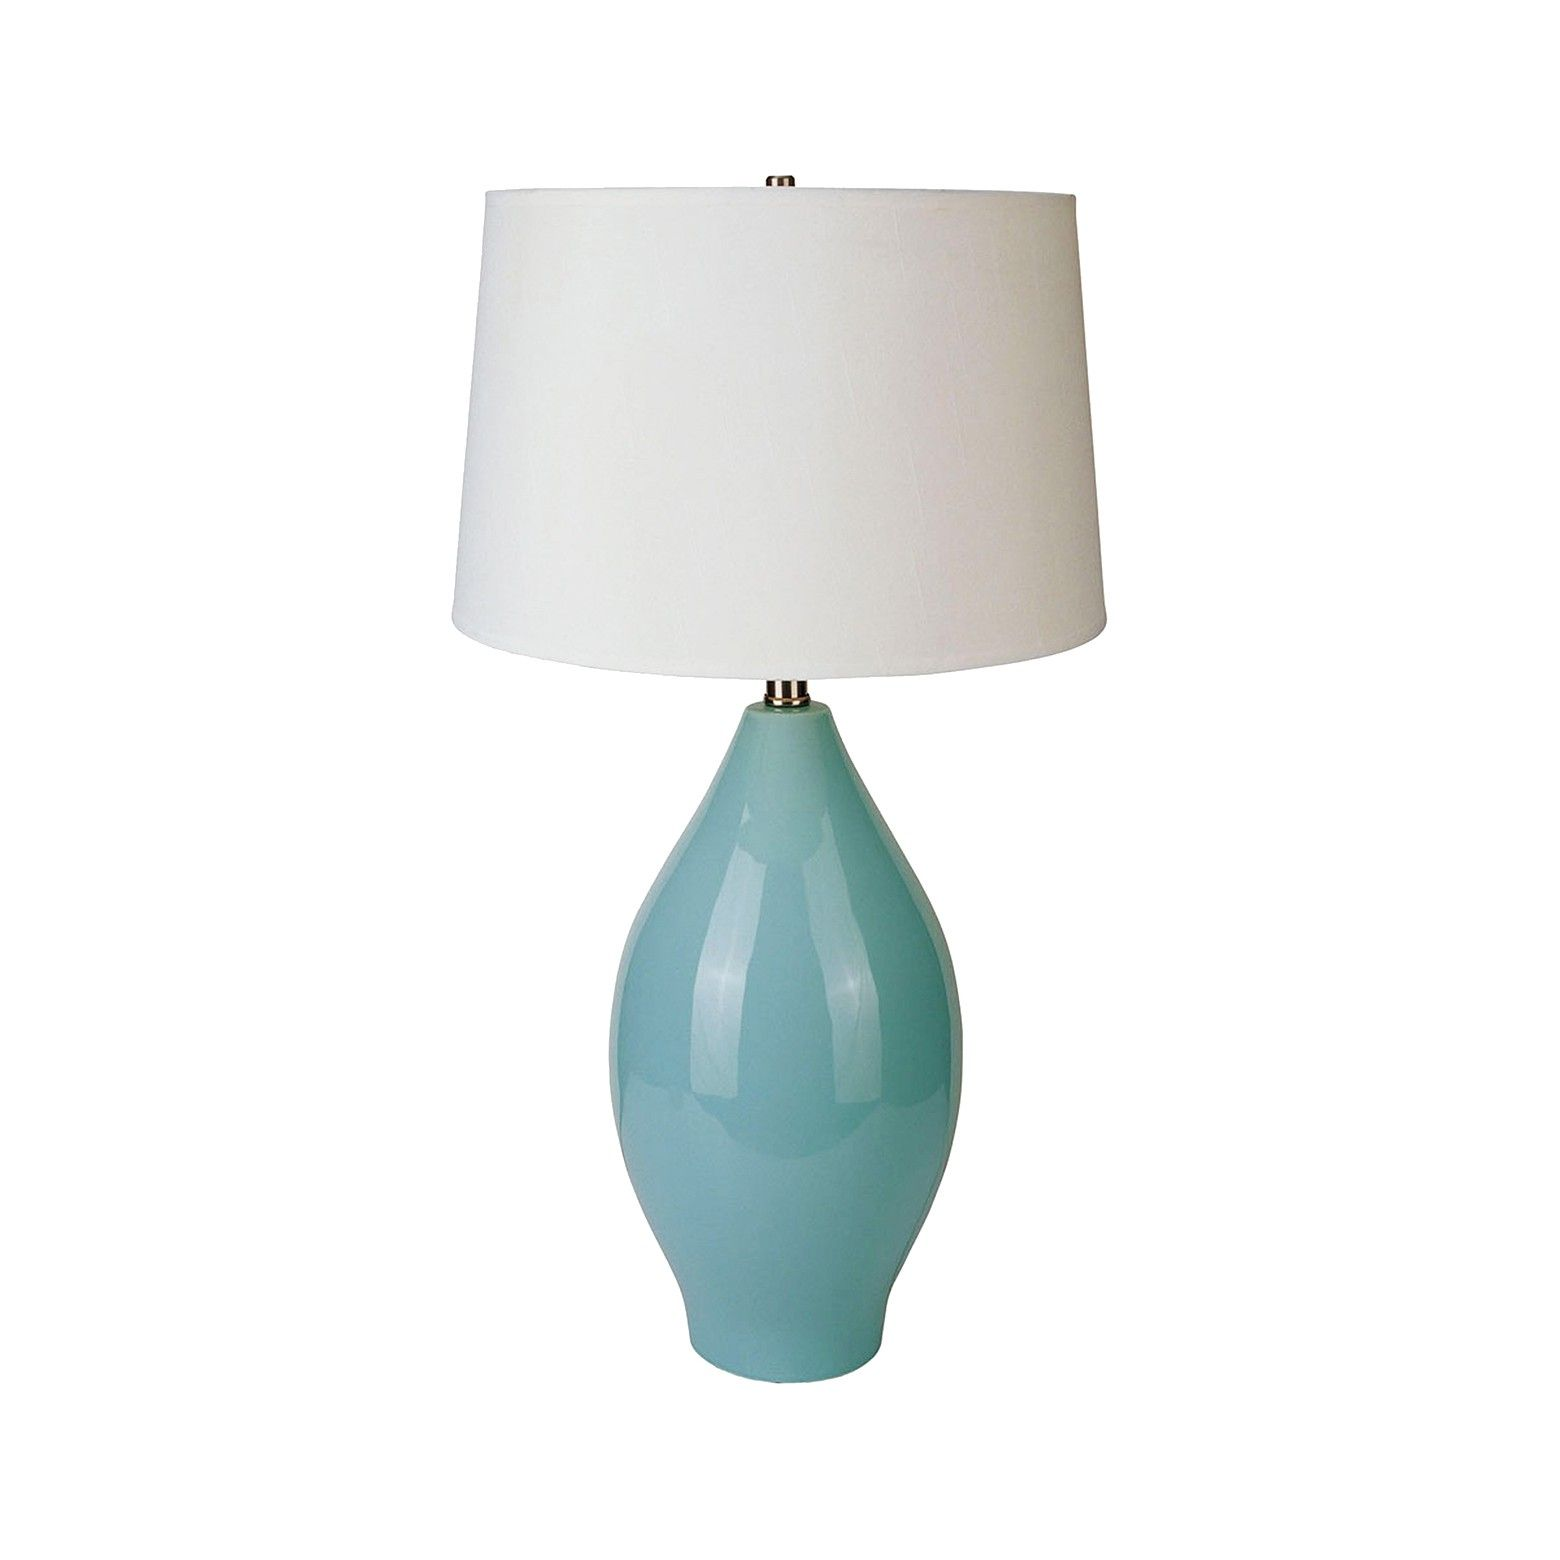 Ore International Table Lamp   Teal Nights